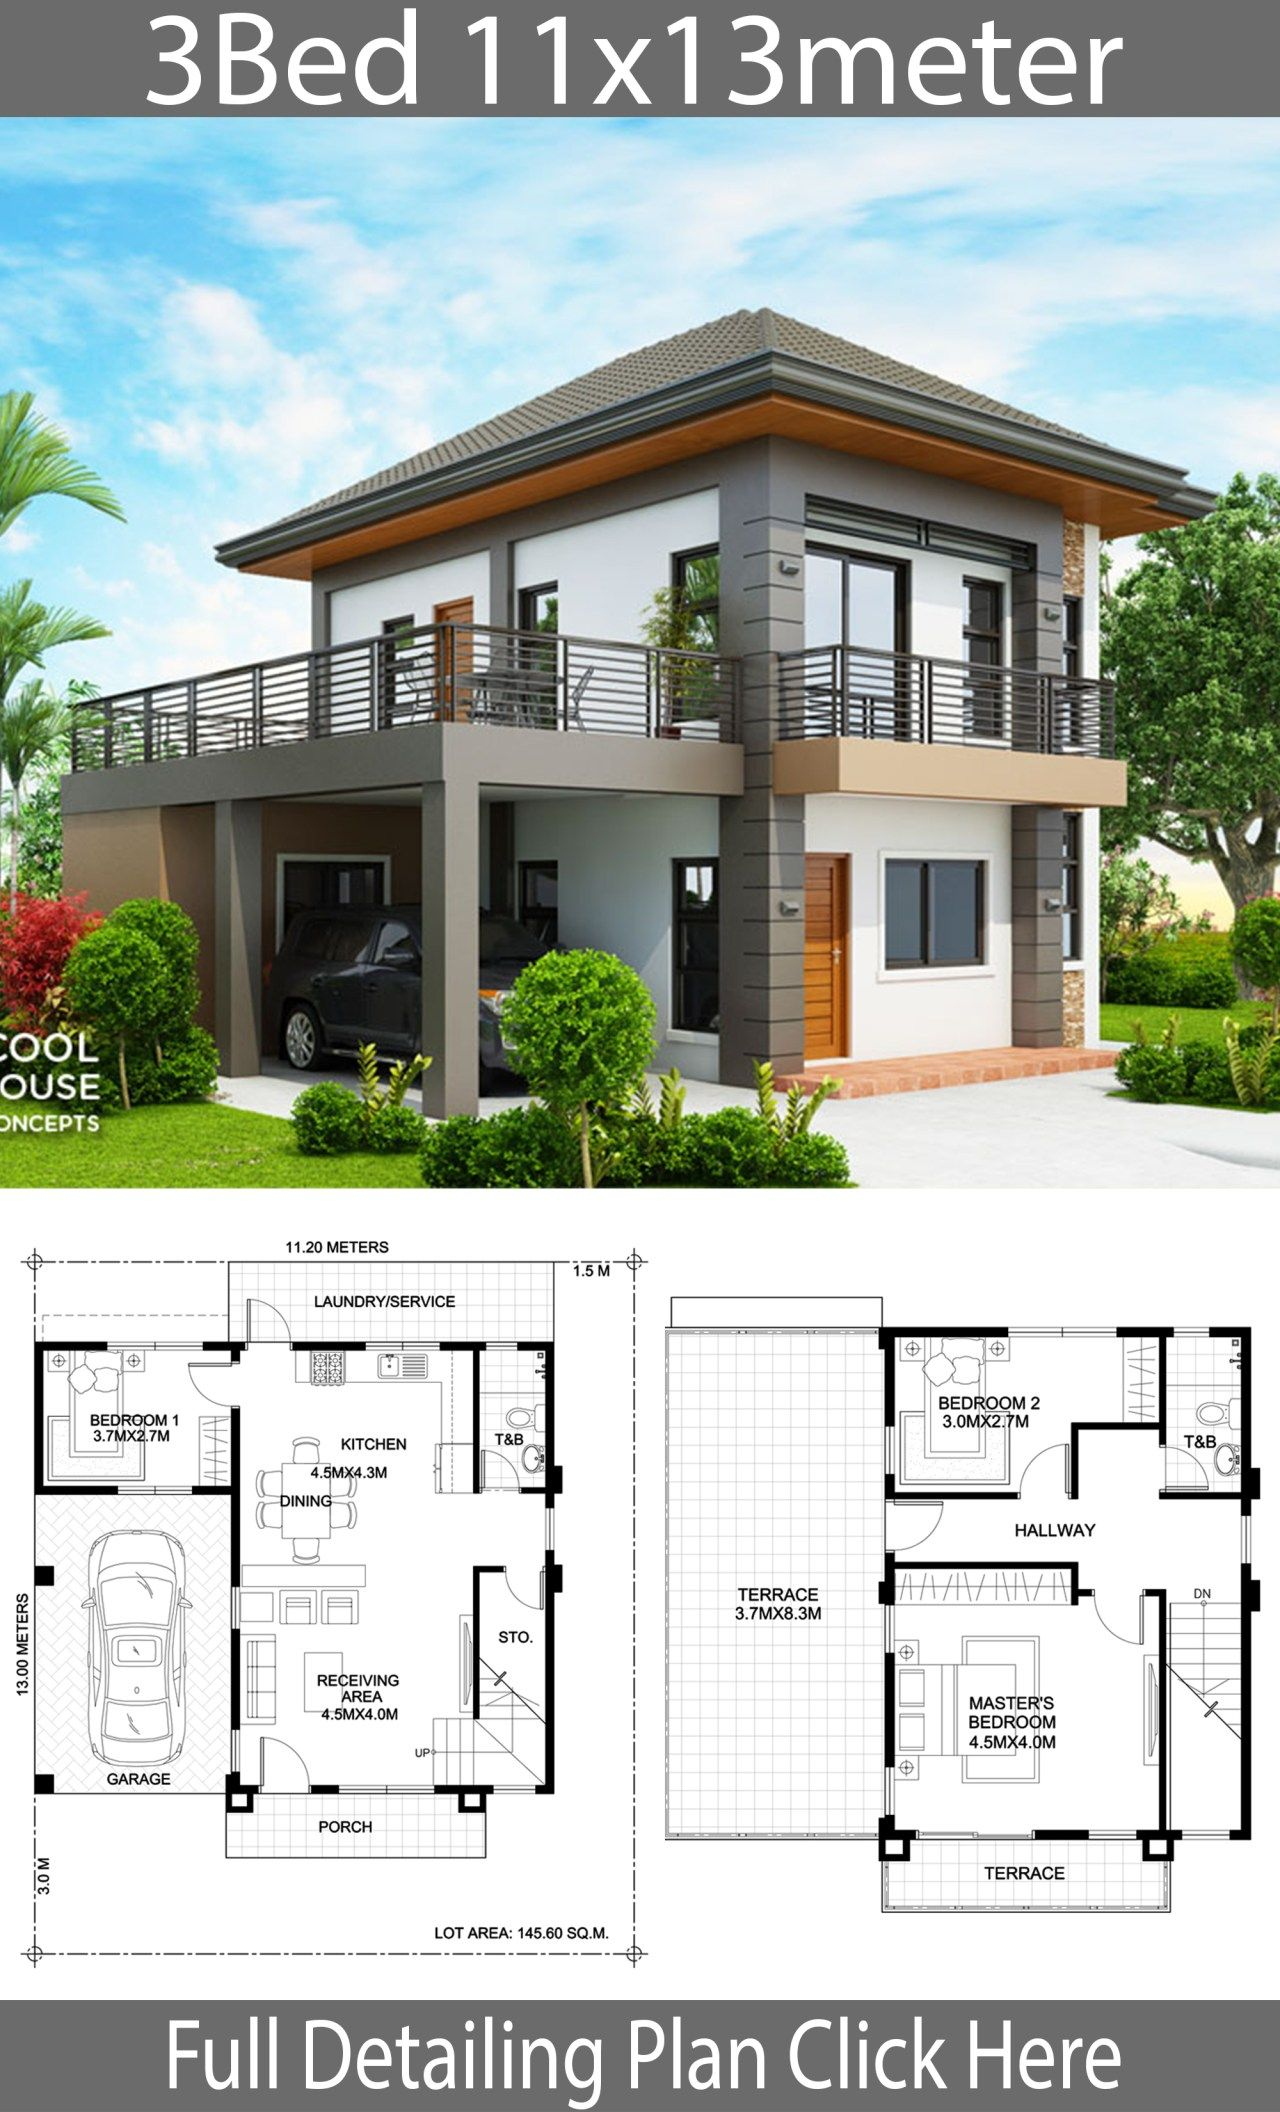 Home Design Plan 11x13m With 3 Bedrooms Home Ideas House Arch Design Architect Design House Home Design Plans